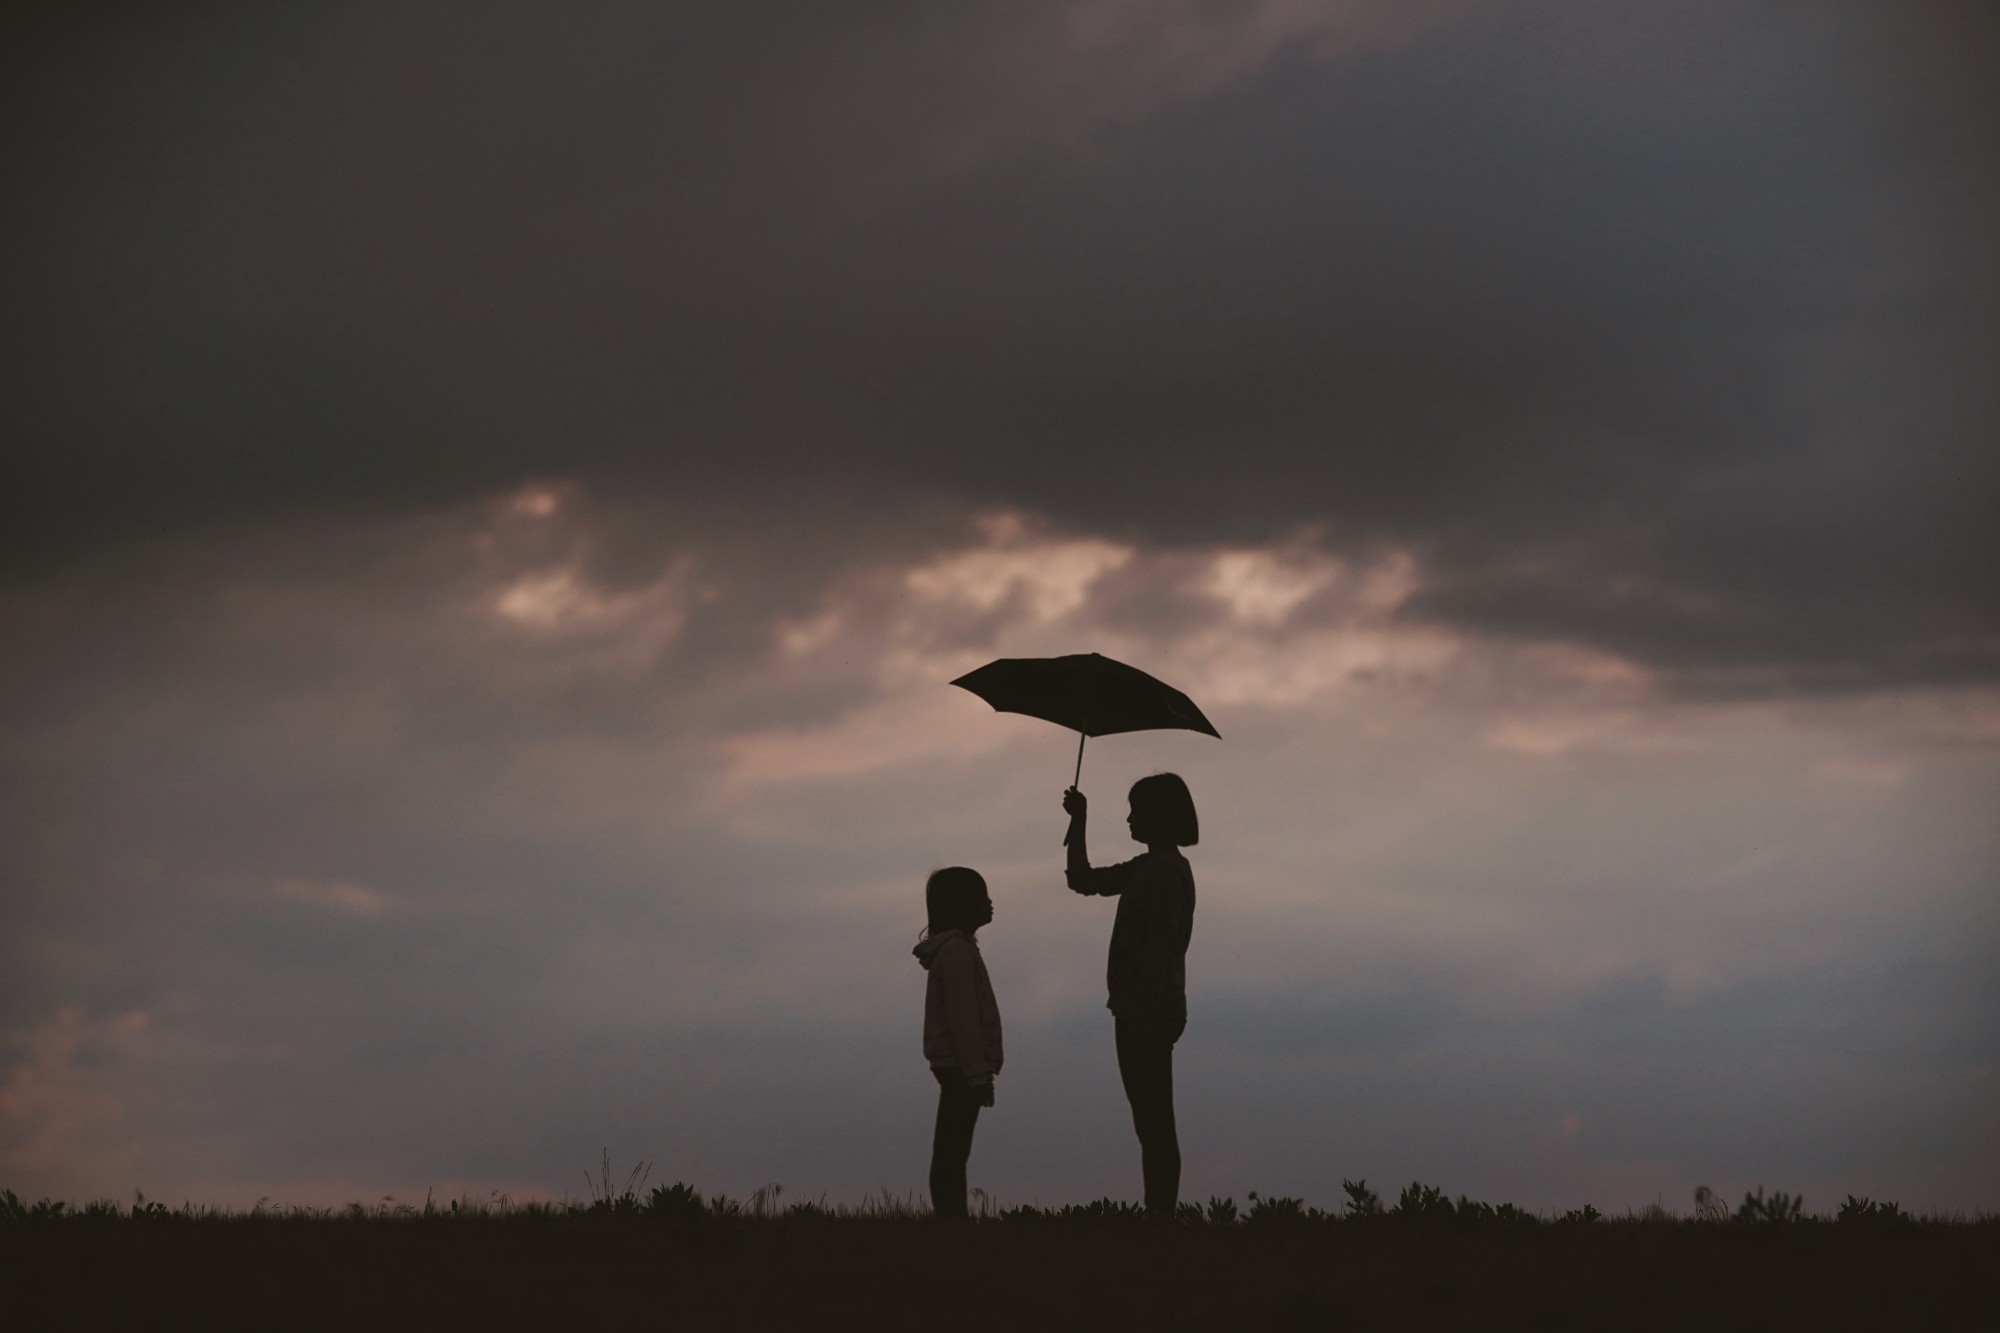 Person holding umbrella over child in a field on a stormy day